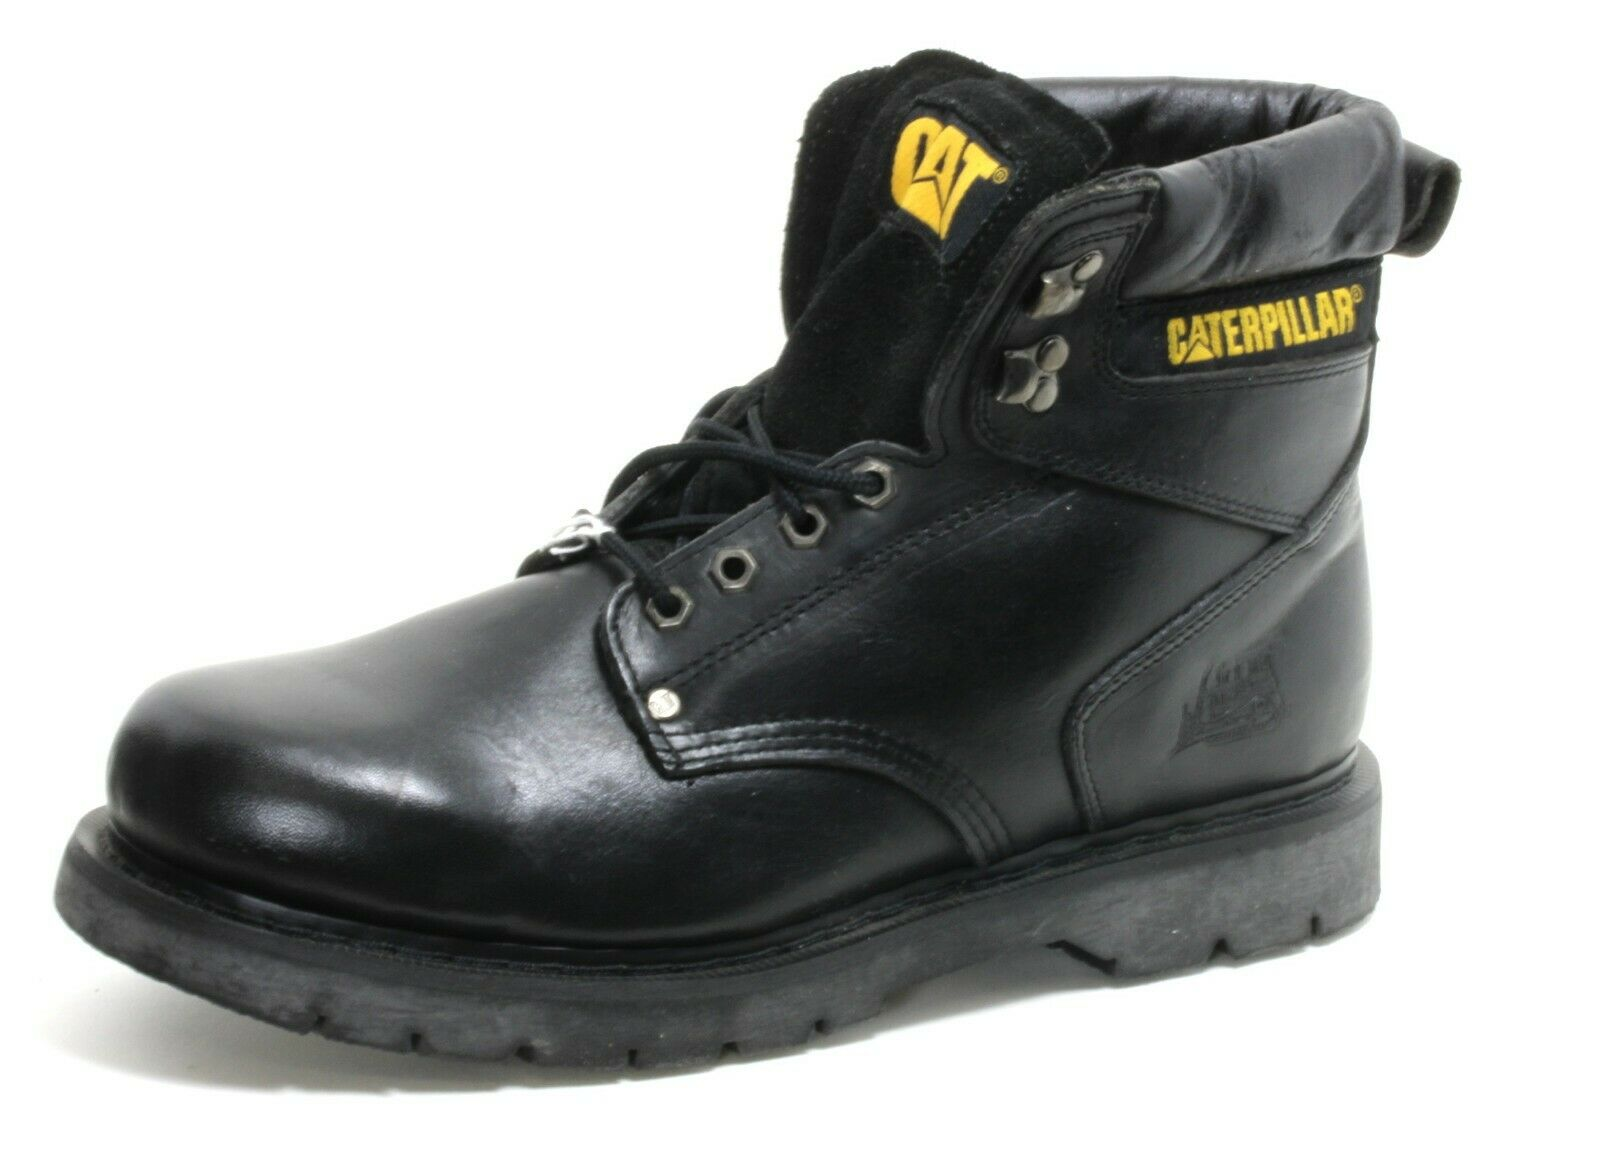 310 Lace-Up Hiking Shoes Trekking Boots Leather Caterpillar 45